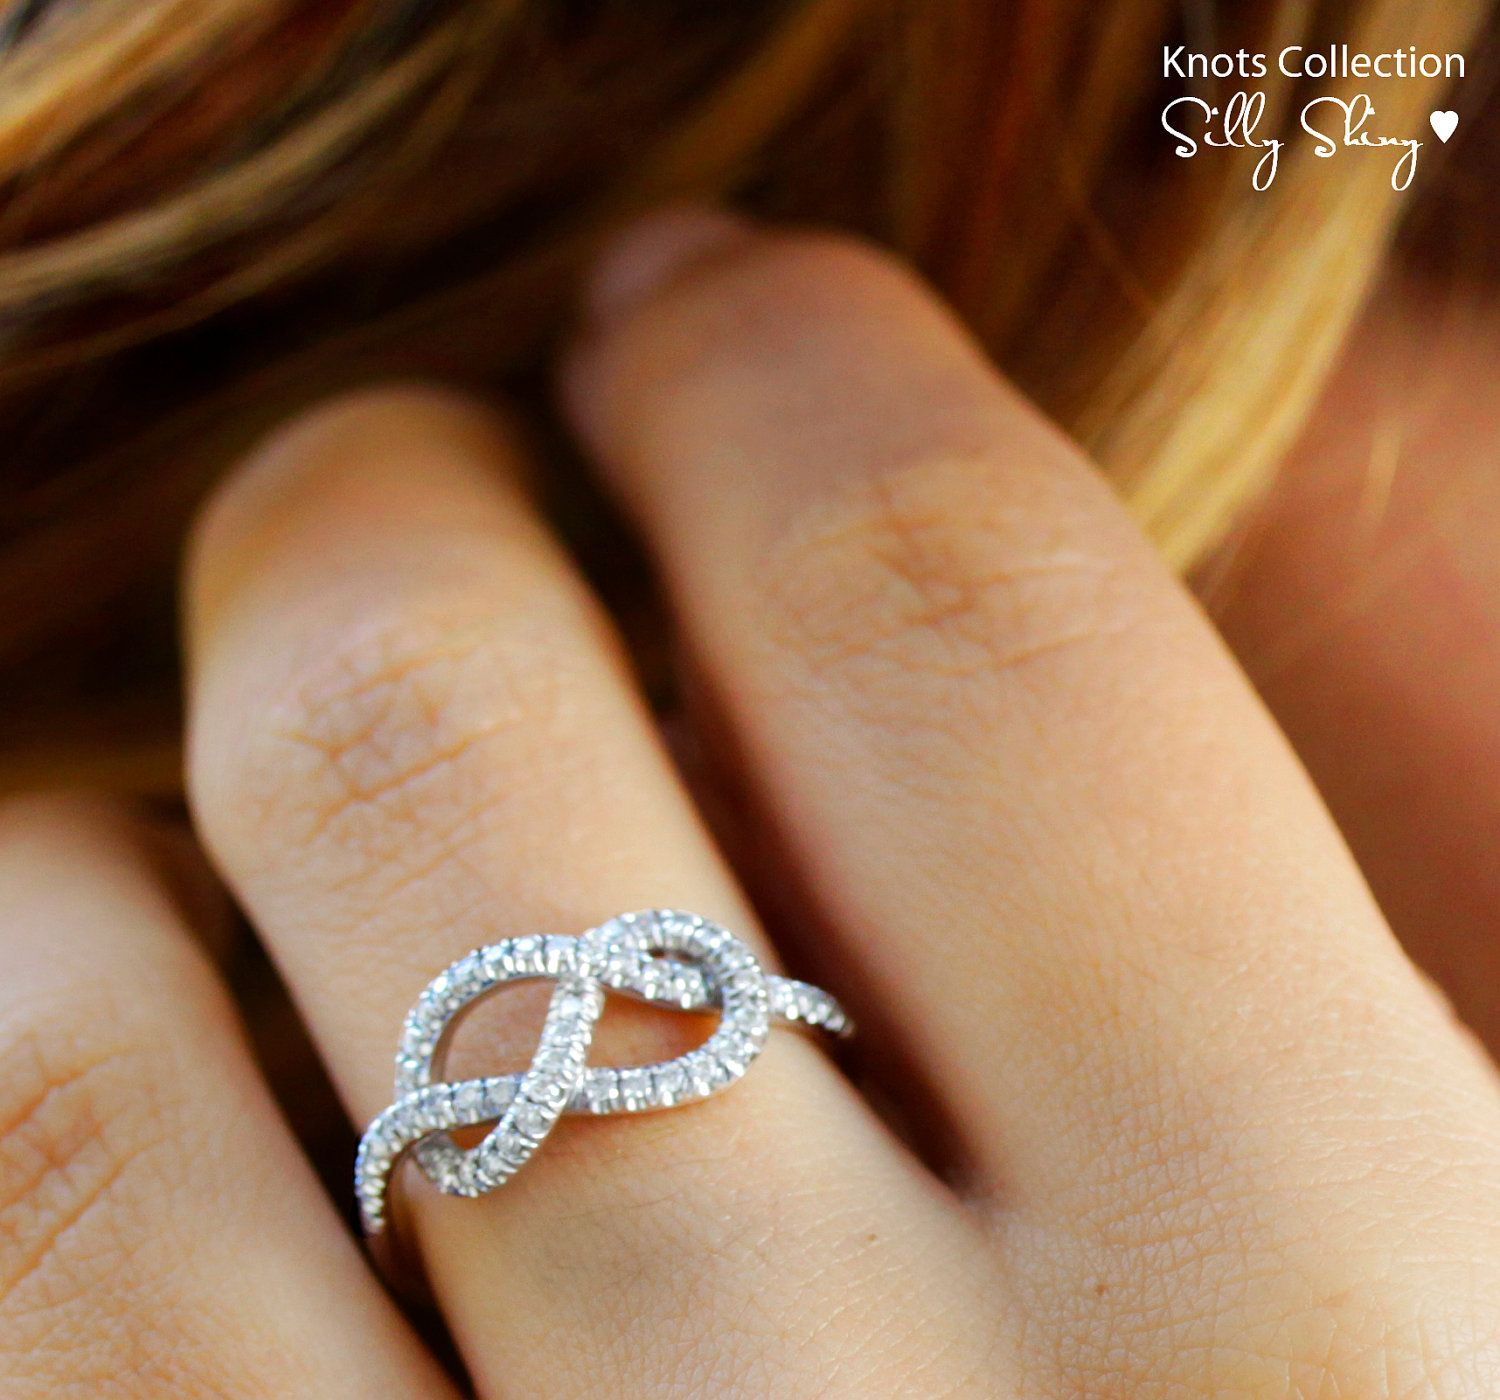 Infinity Engagement Ring Unique Engagement Ring The Original 0 35 Ct Diamond Ring Unique Wedding Band Love Knot Diamond Ring Bridal Jewelry Infinity Knot Ring Knot Ring